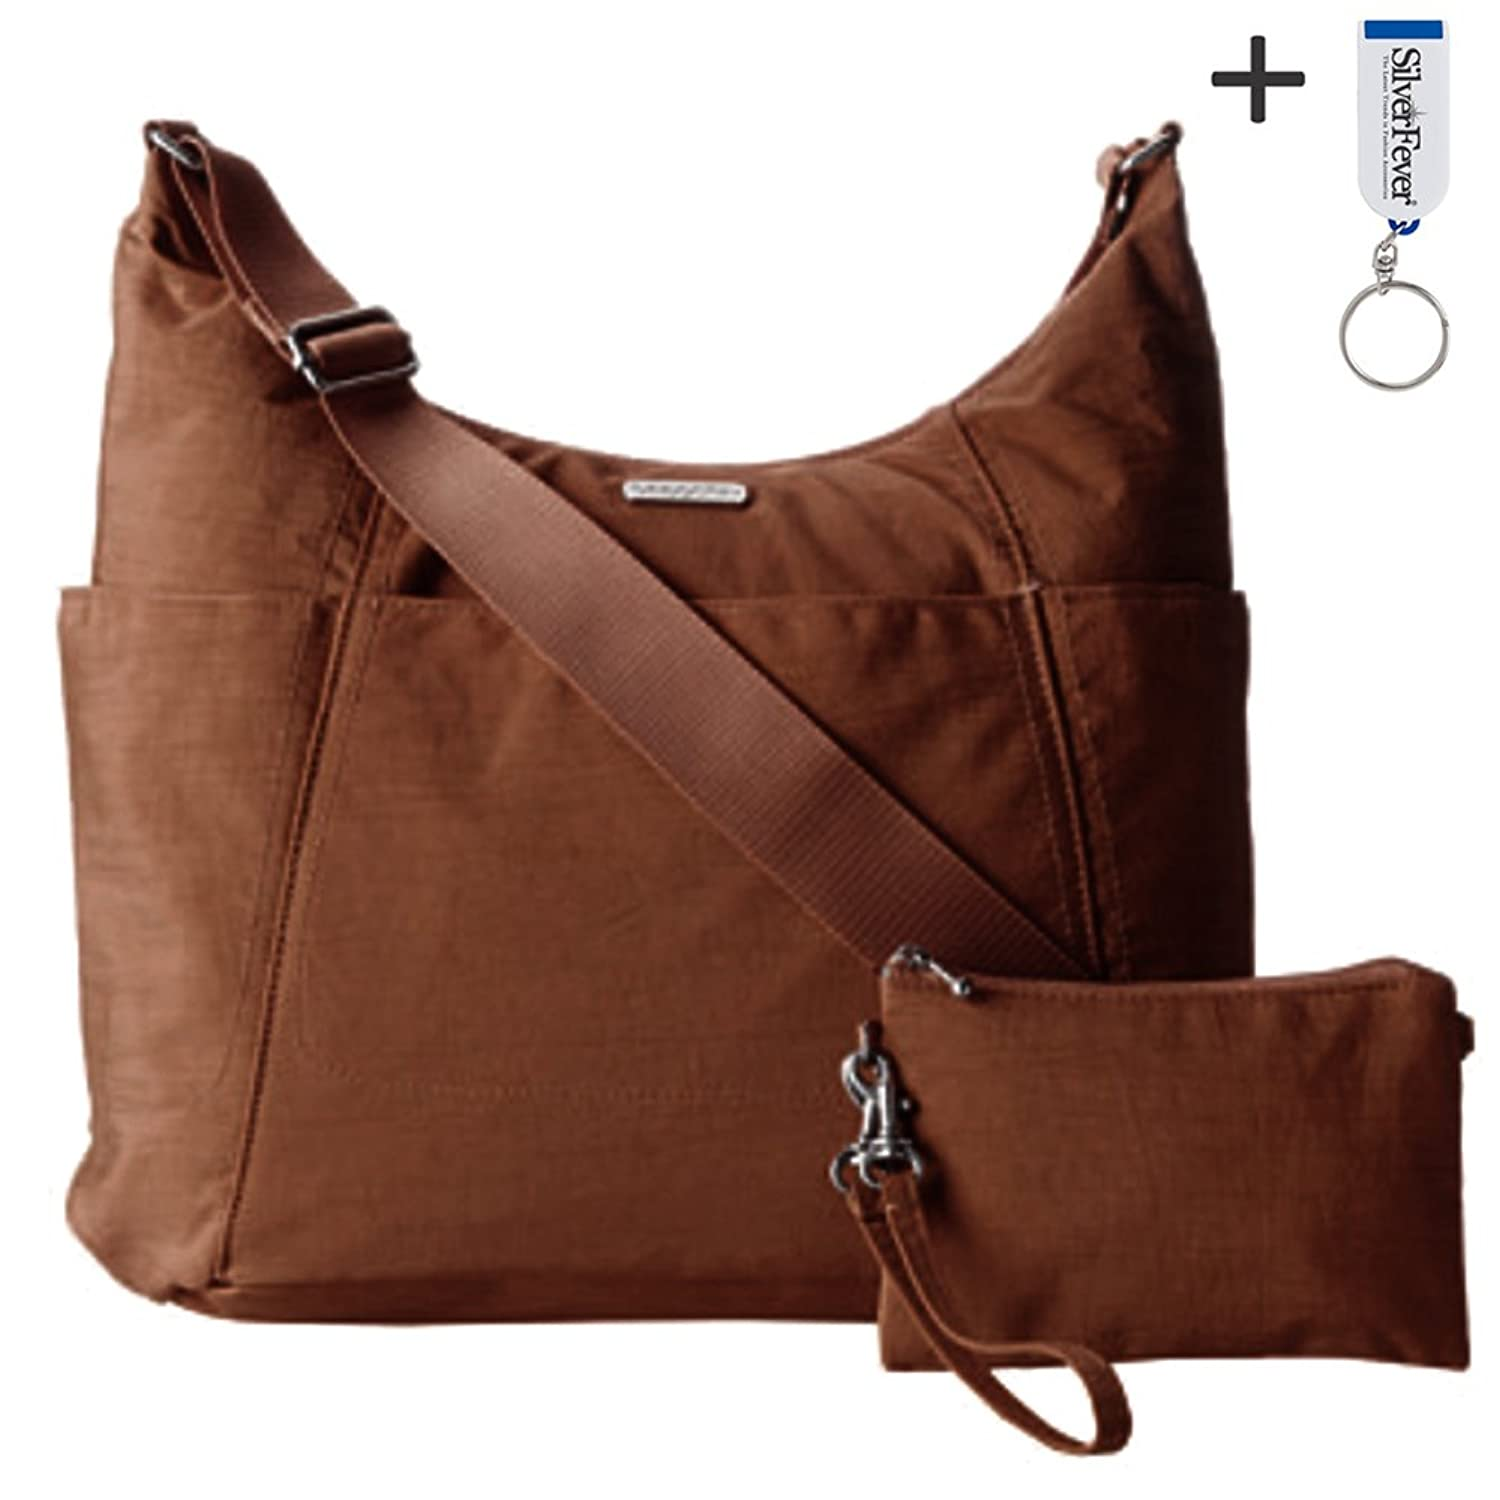 Baggallini Slick Hobo Tote Handbag Functional Pockets Crossbody (Mocha)